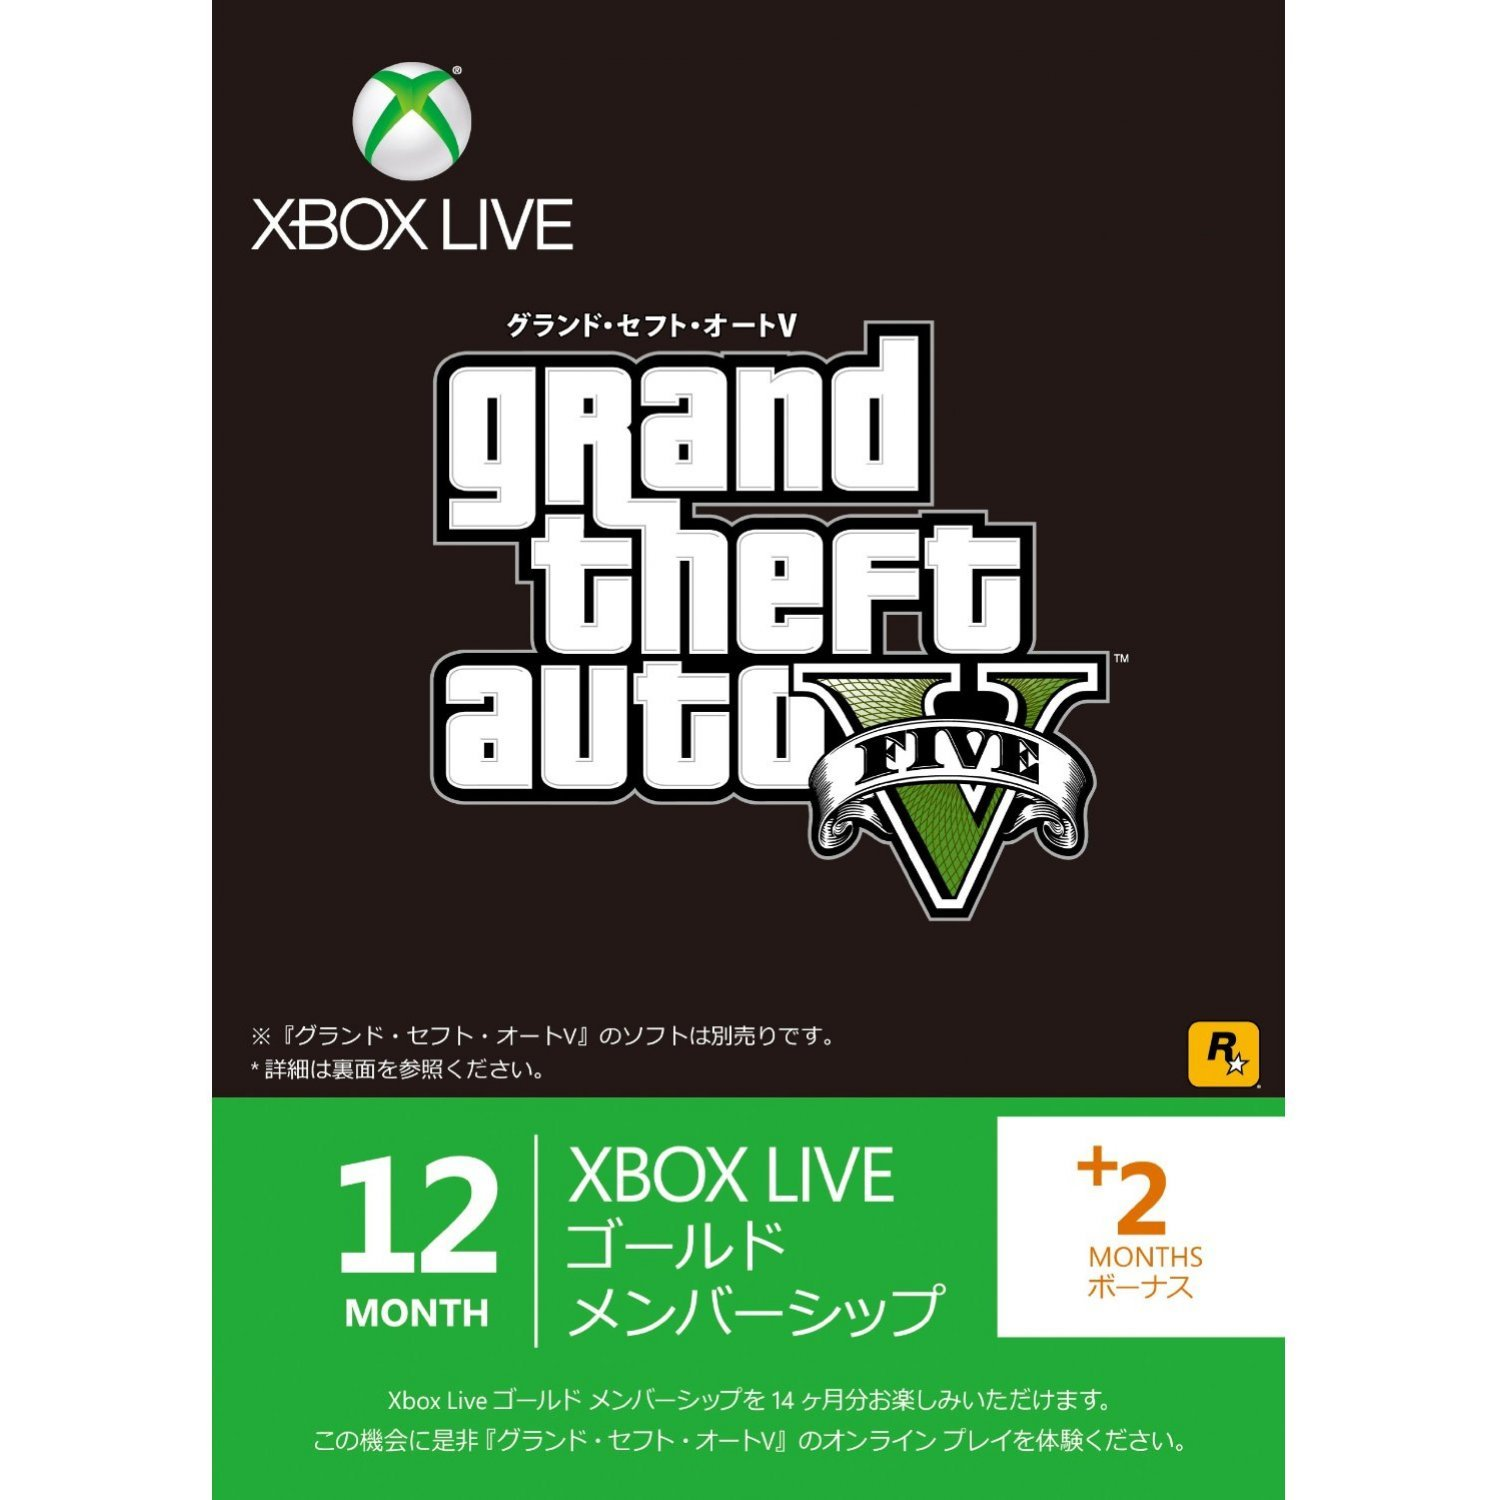 Xbox Live 12-Month + 2 Gold Membership Card (Grand Theft